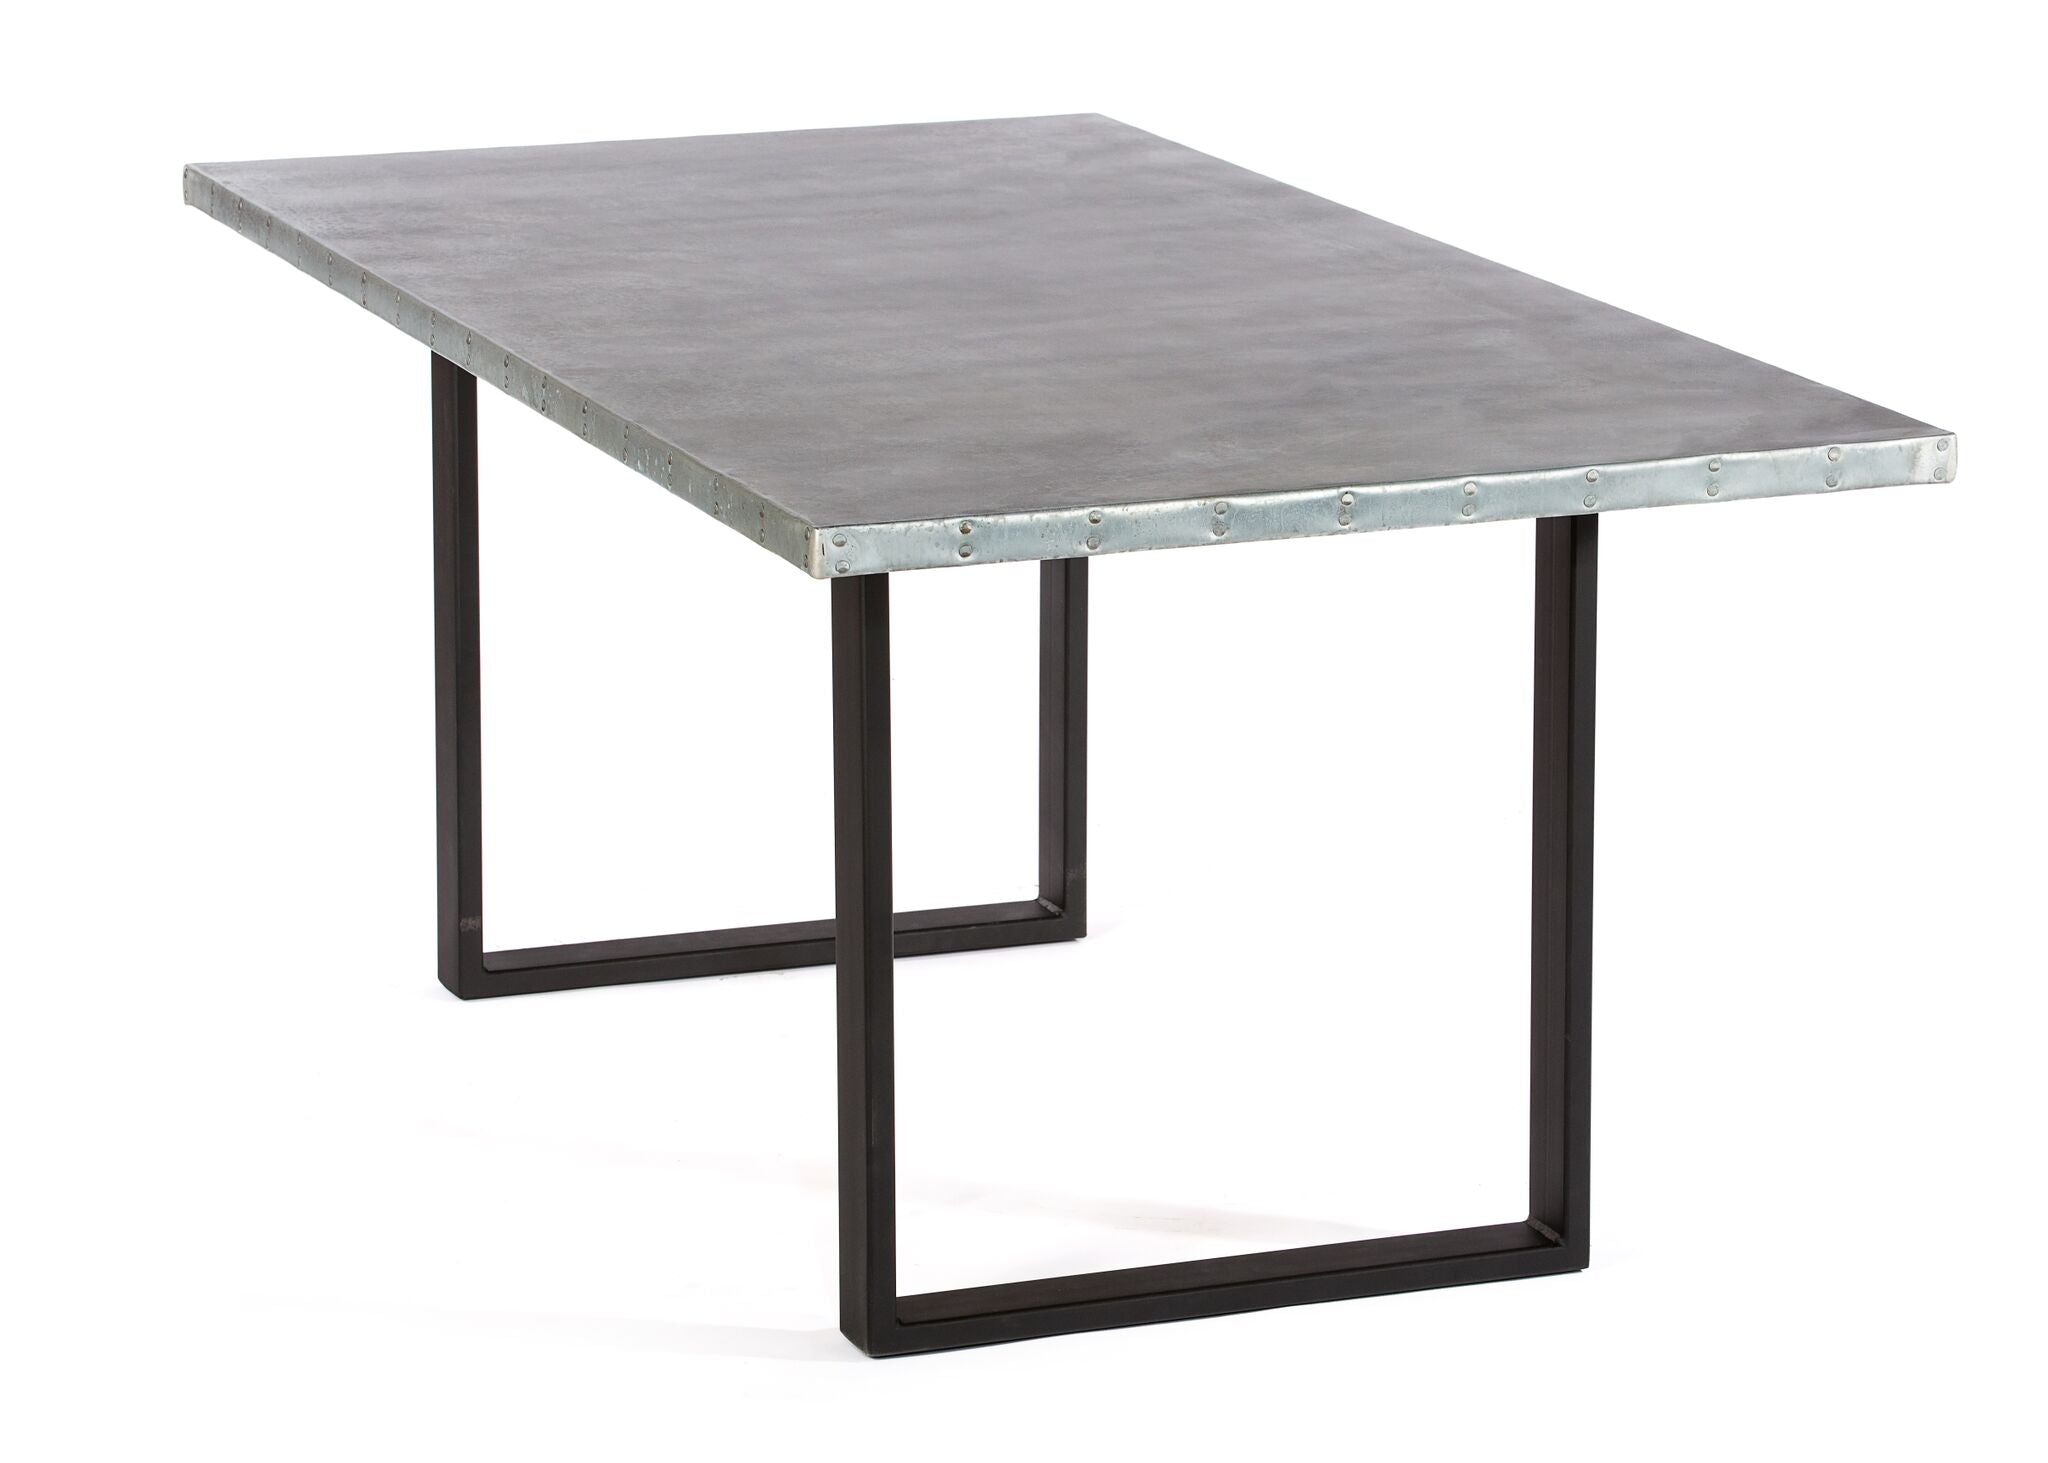 Zinc Rectangular Table | Maddox Table | CLASSIC | Natural Ash | CUSTOM SIZE L 60.00 W 37.00 H undefined |